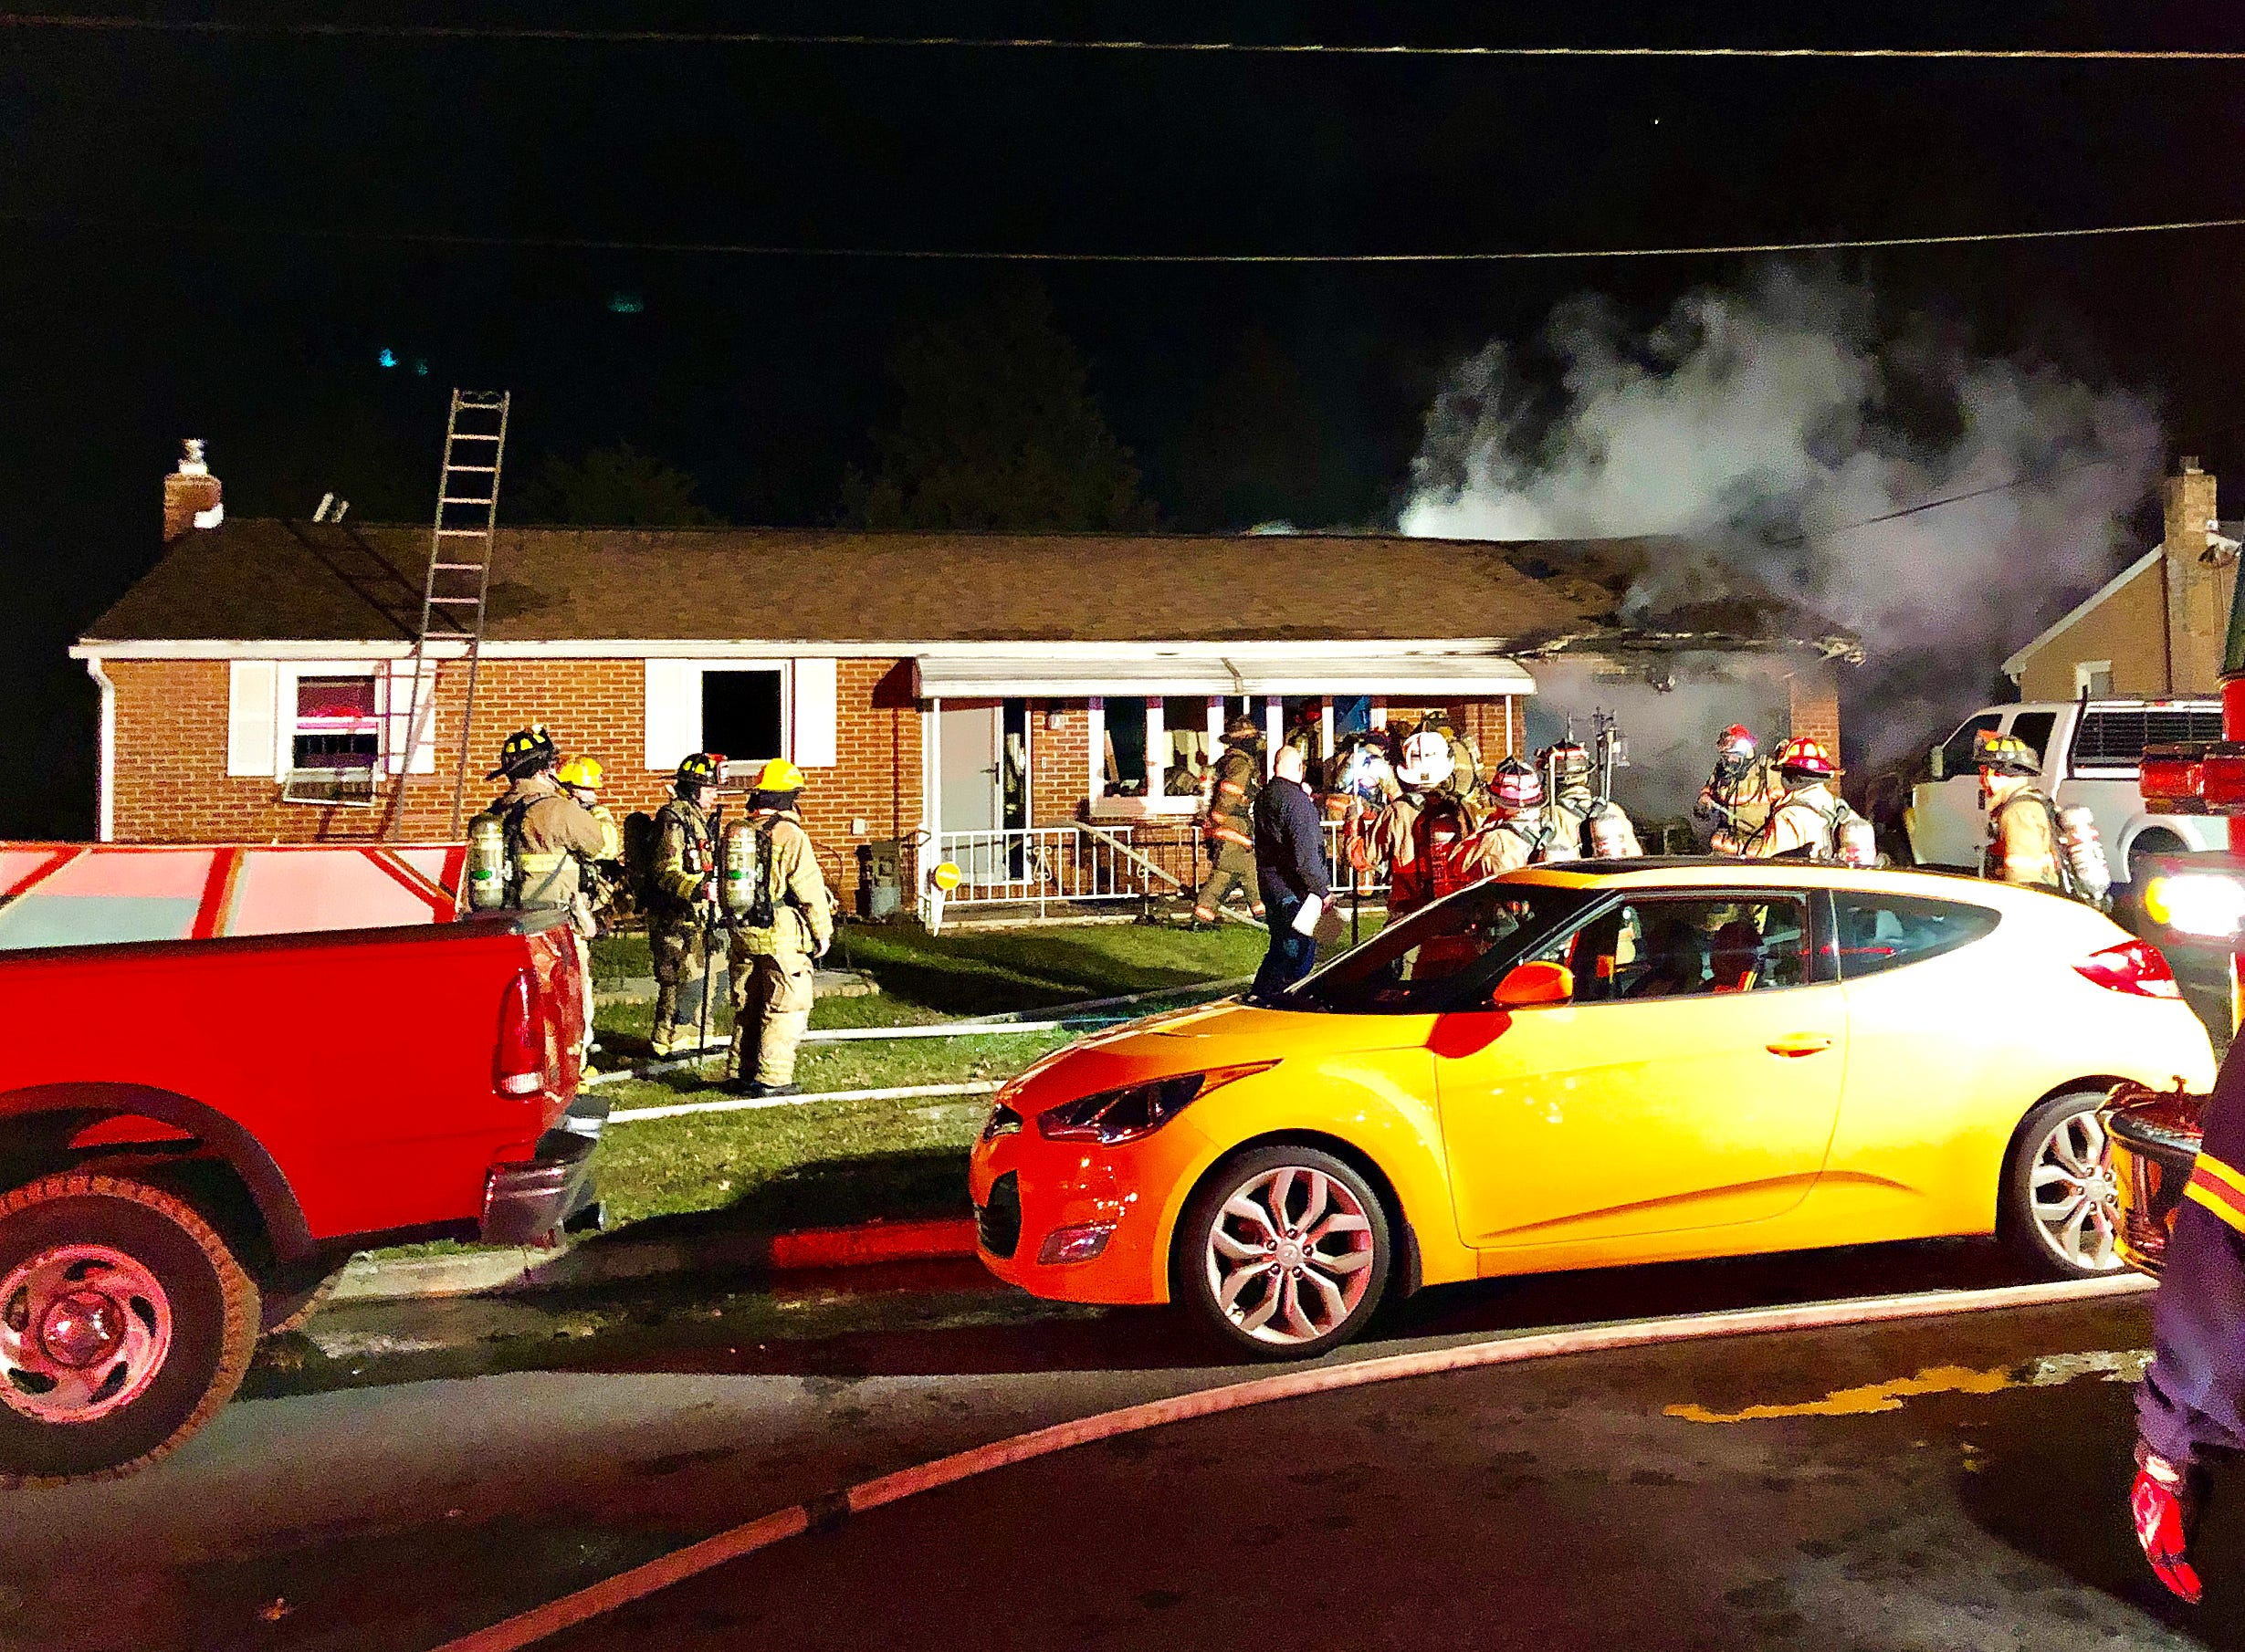 Firefighters work a structure fire on Teslin Road in Manchester Township, Wednesday, Jan. 9, 2019. Dawn J. Sagert photo